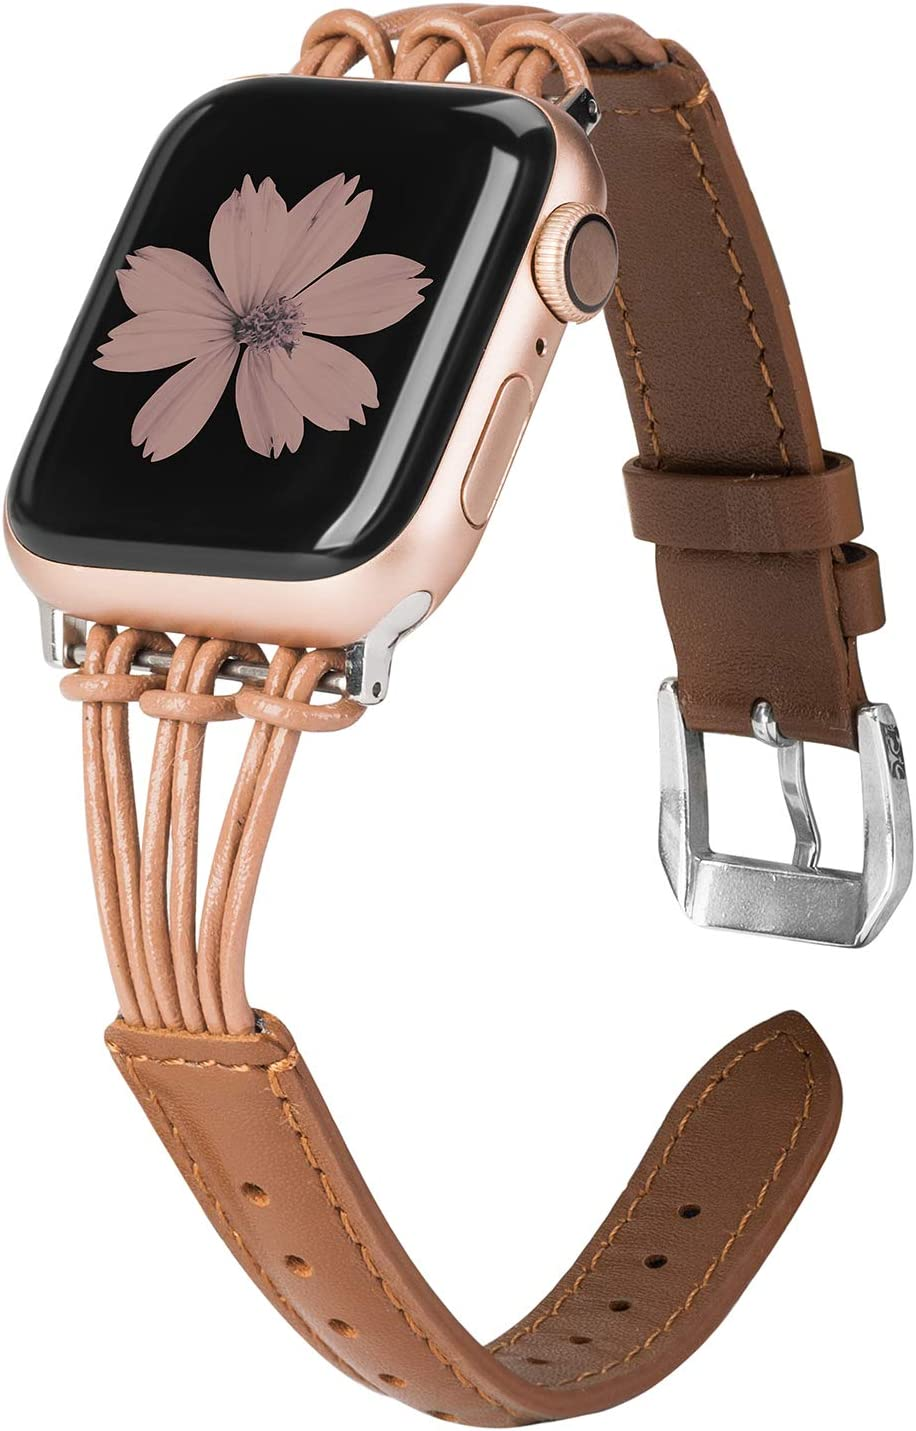 TOYOUTHS Leather Band Compatible with Apple Watch Band 38mm 40mm Rose Gold iWatch Womens Mens Strap Slim Wristband Leisure Replacement Tassel Bracelet Series 6 5 4 3 2 1 Edition